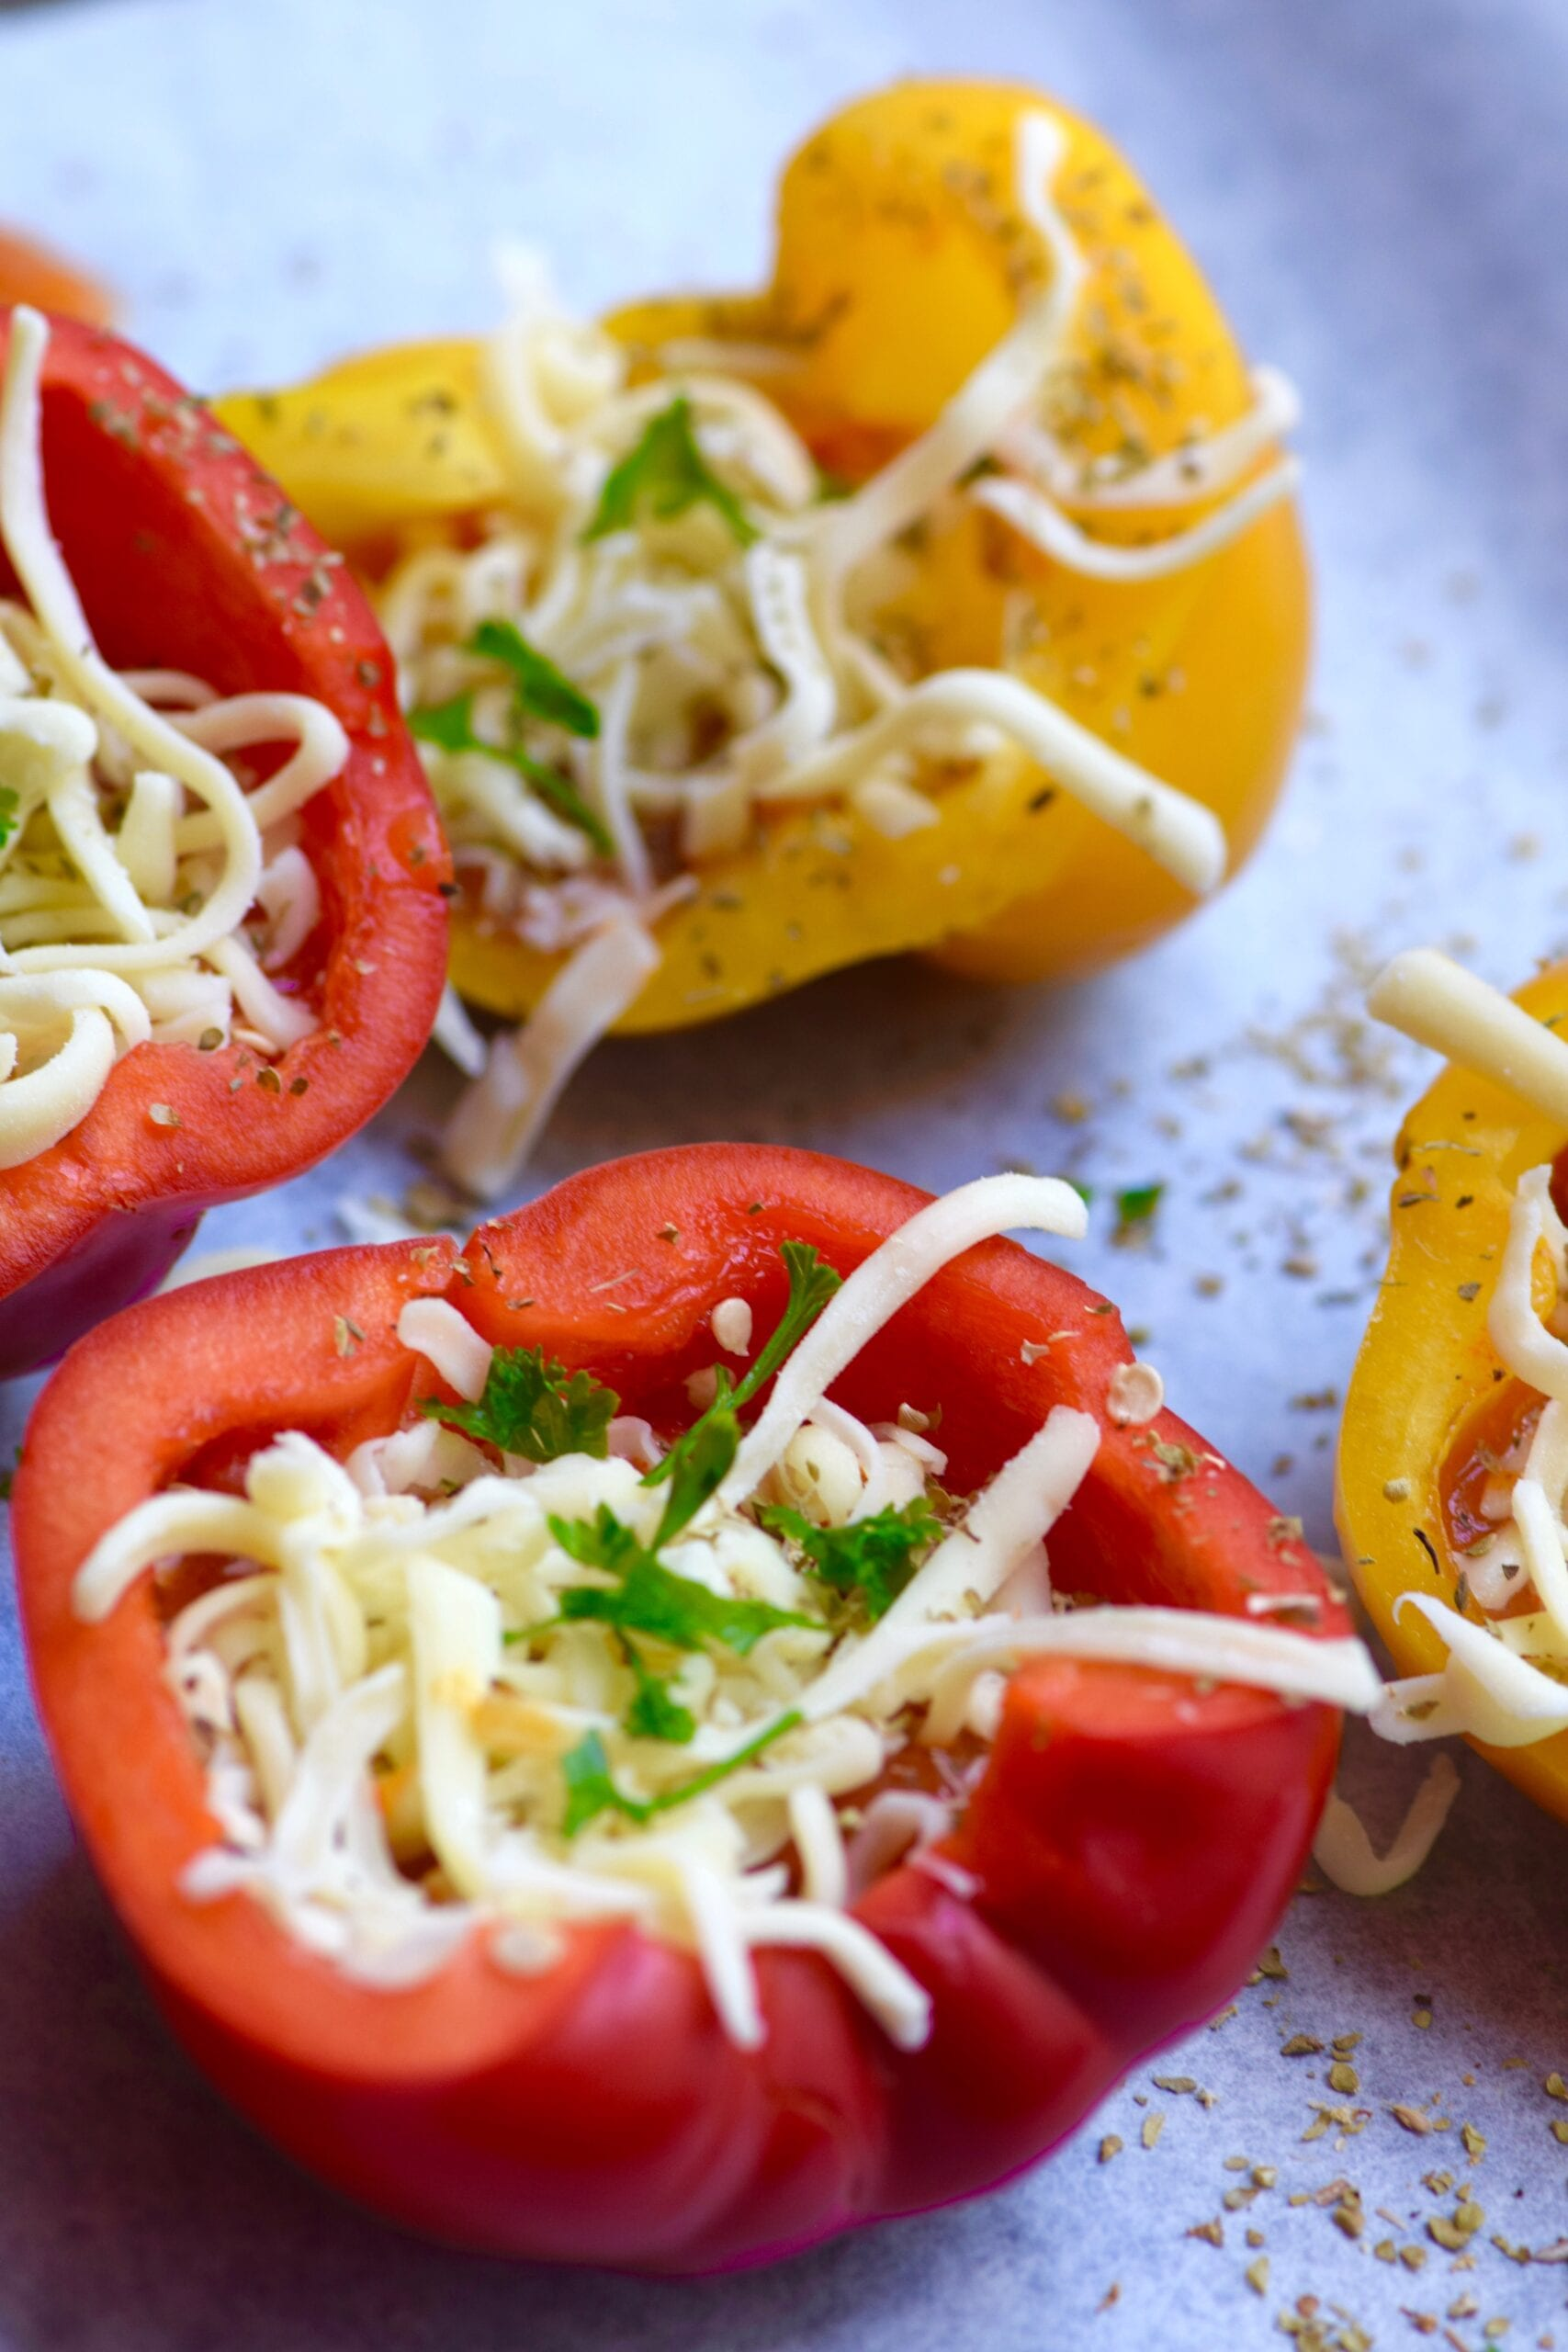 Adding cheese, tomato and spices to the bell peppers